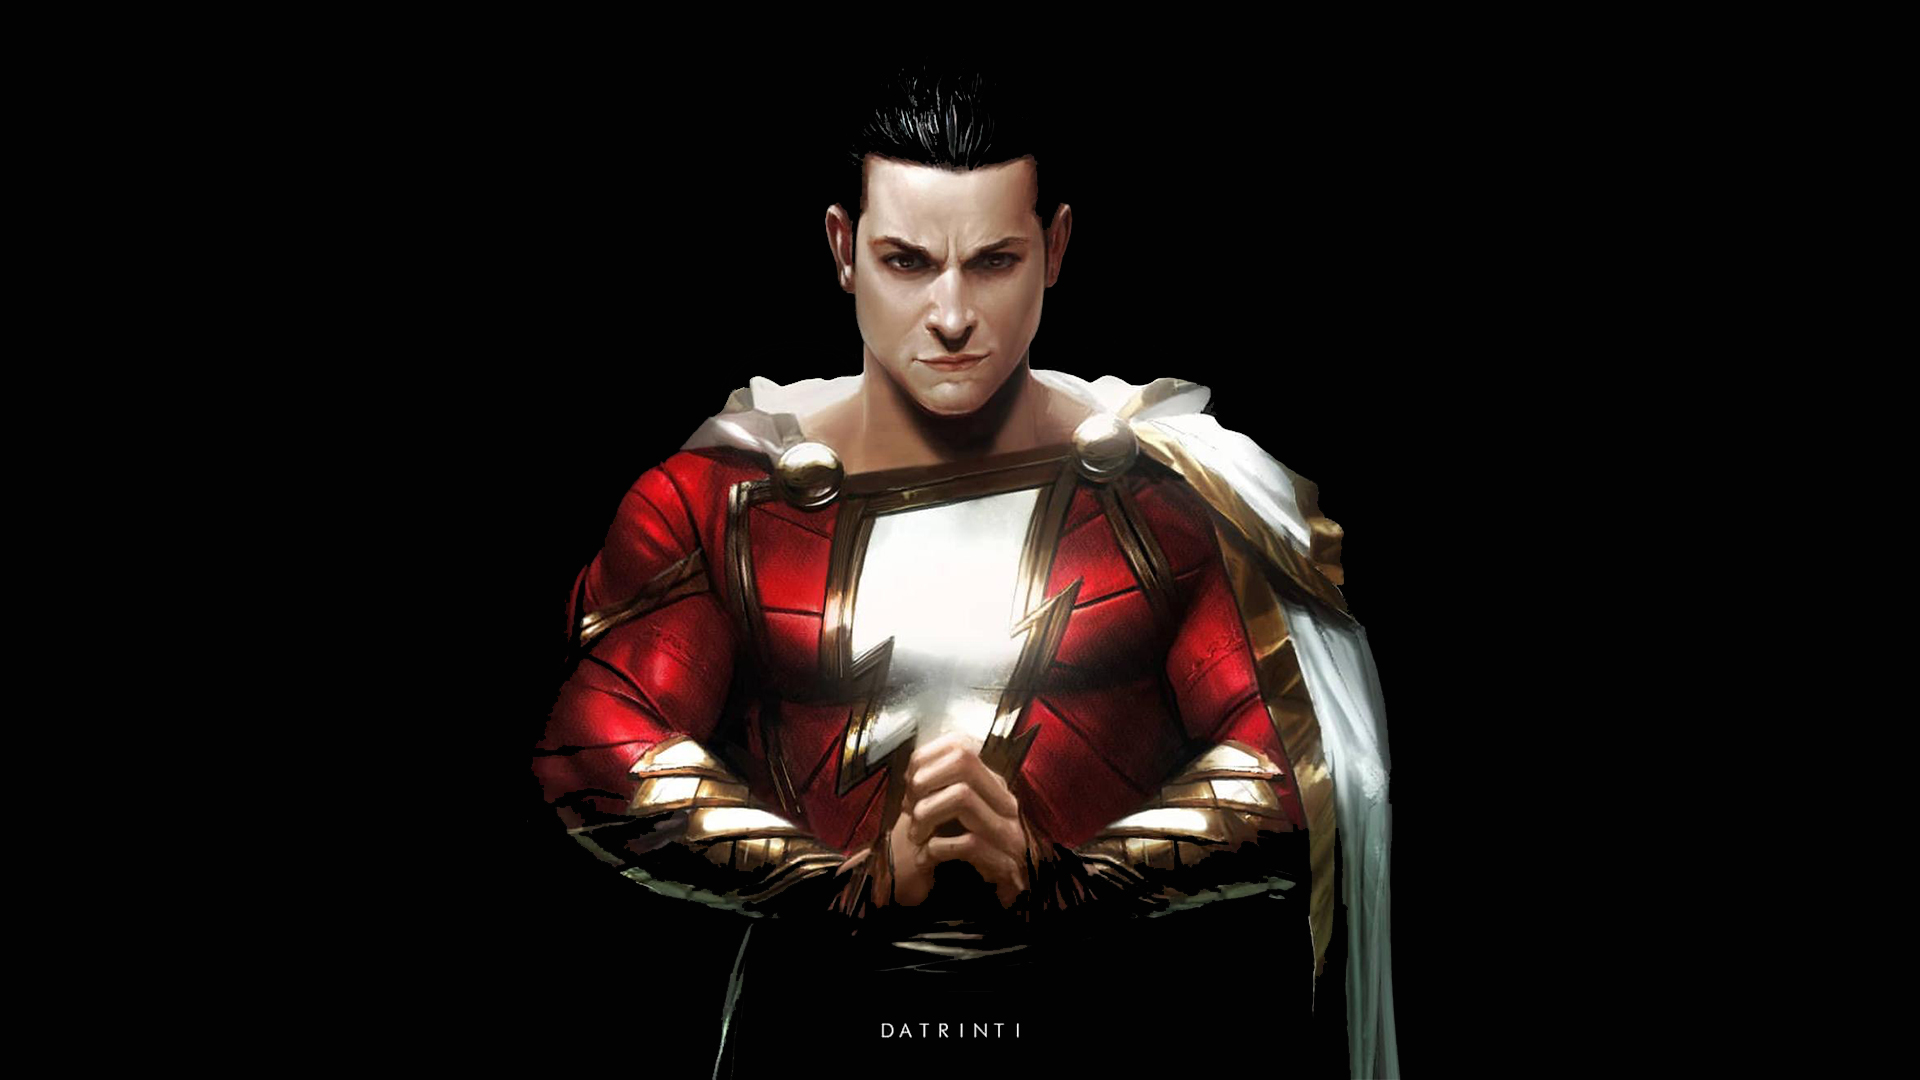 Shazam Artwork Hd Superheroes 4k Wallpapers Images Backgrounds